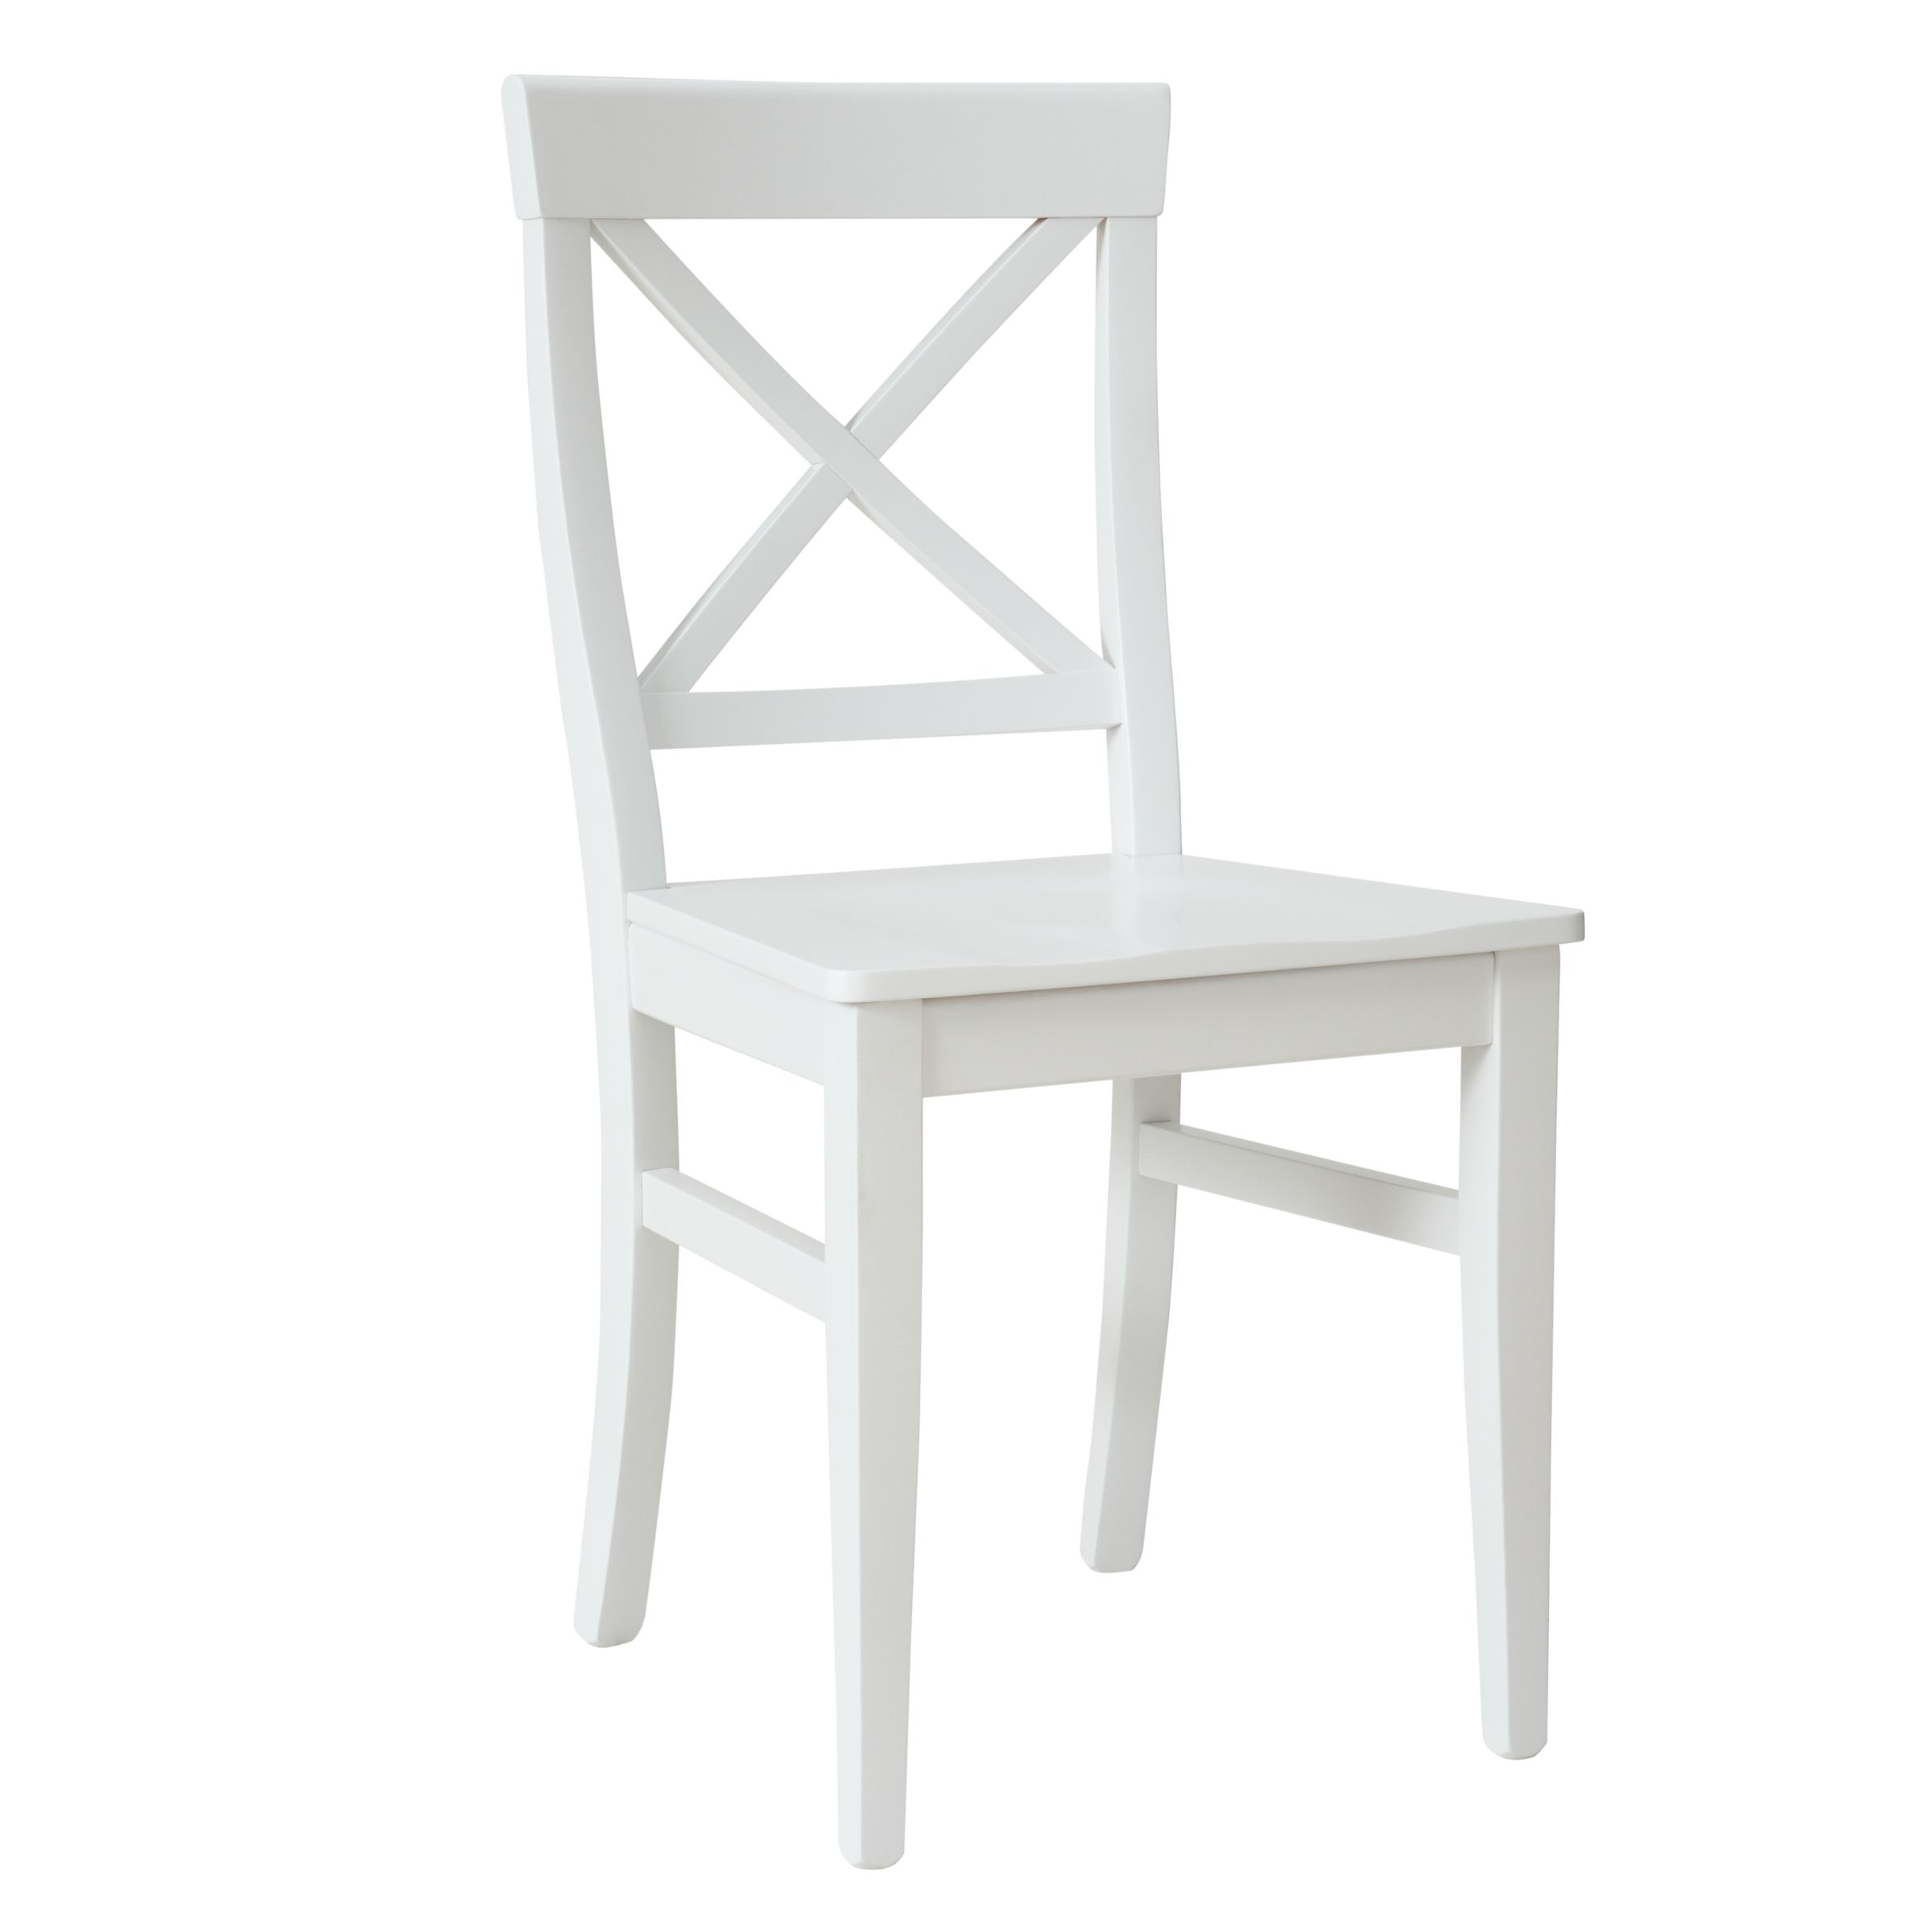 pemberley cross back dining chair white office support john lewis at